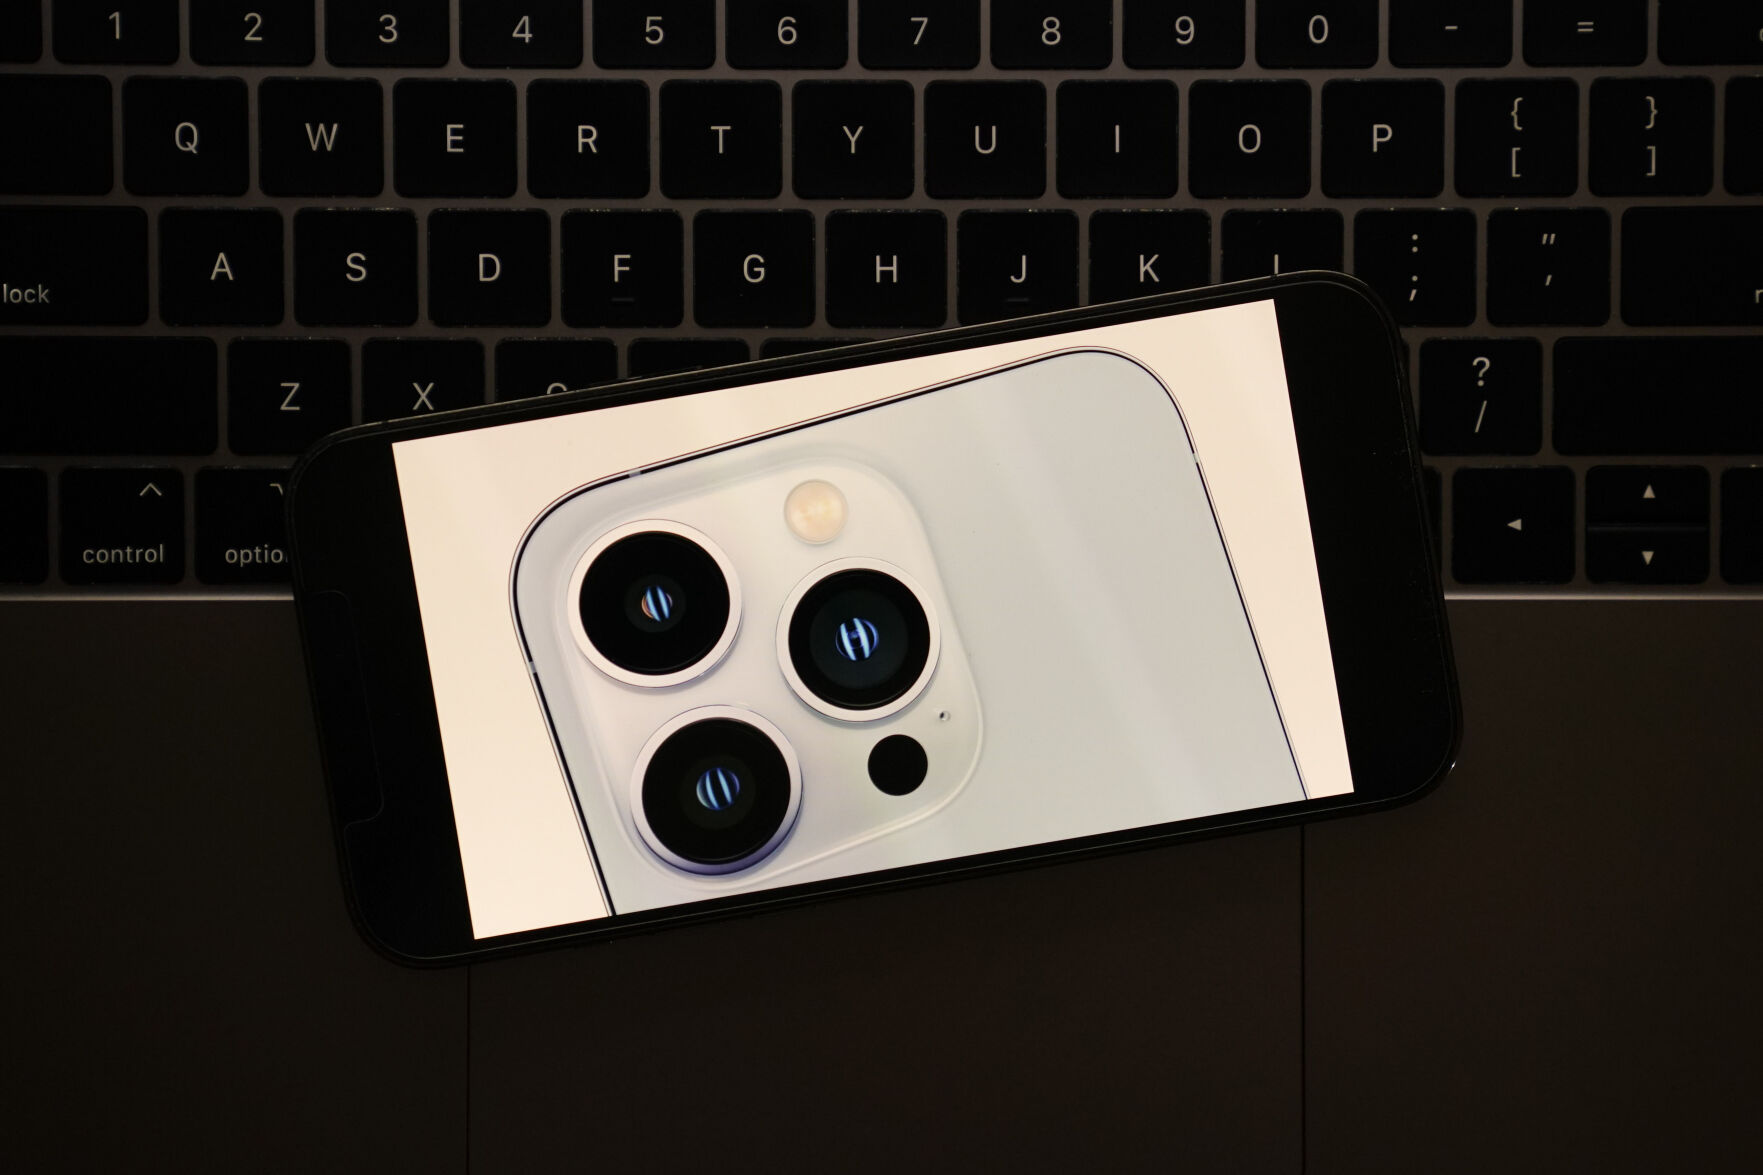 <p>A portion of the new iPhone 13 Pro smartphone is seen on a device display in La Habra, Calif., during its introduction in a virtual event held to announce new Apple products Tuesday, Sept. 14, 2021. (AP Photo/Jae C. Hong)</p>